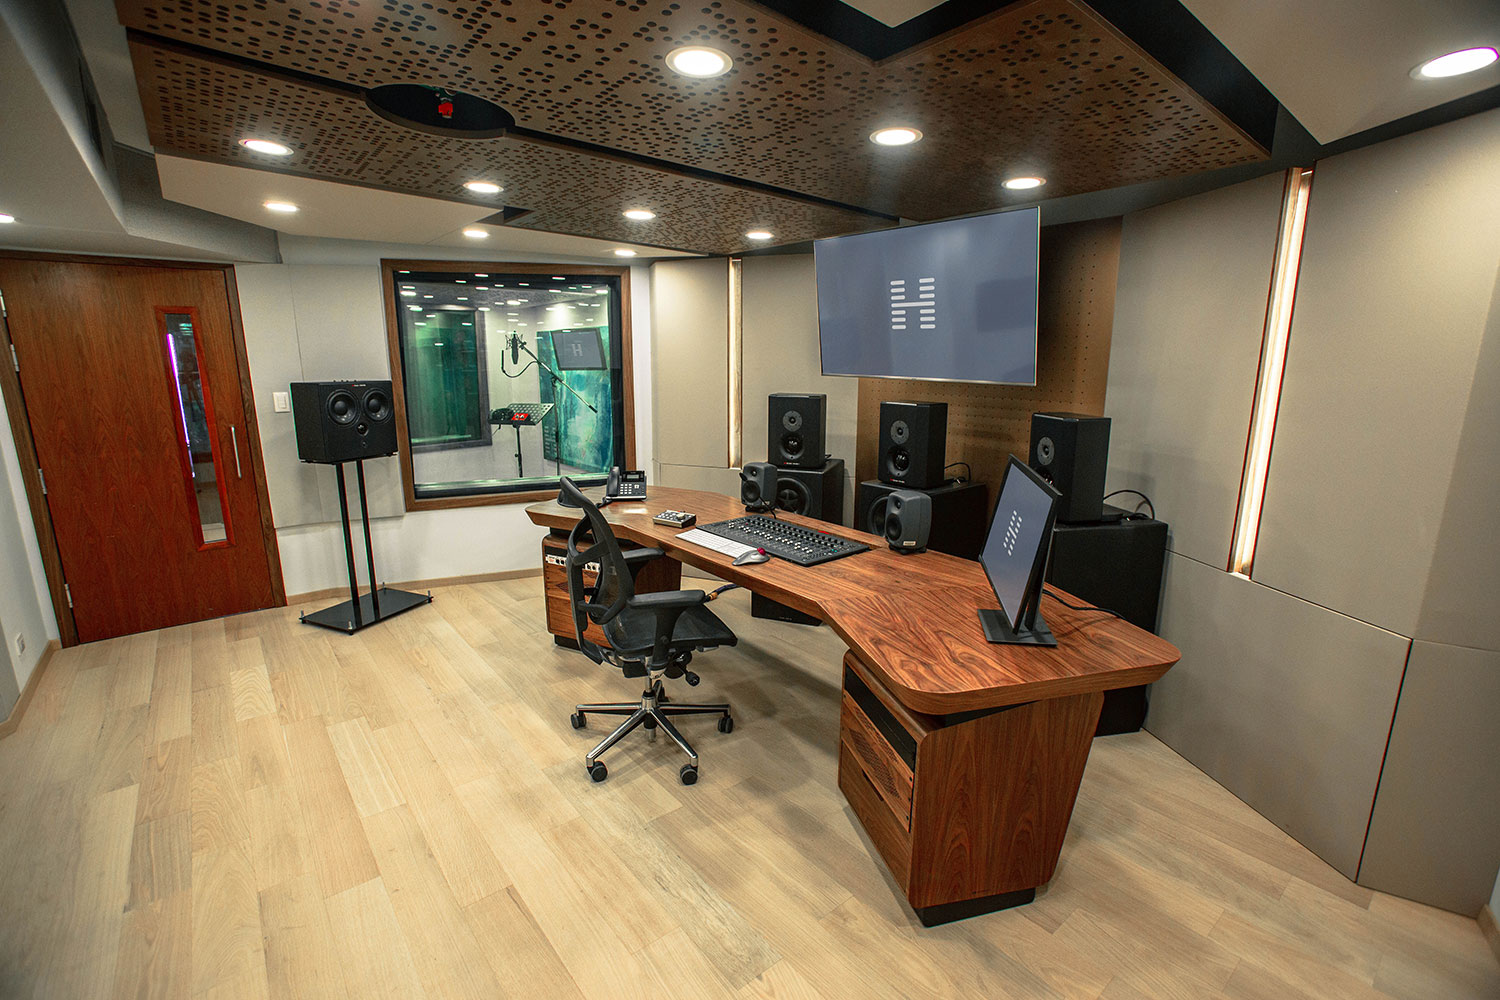 Hogarth Mexico international advertising communications agency studio. WSDG has been retained to create a recording studio complex for the leading international Advertising/Marketing/ Communication company's new Mexico City offices. Control Room Side.